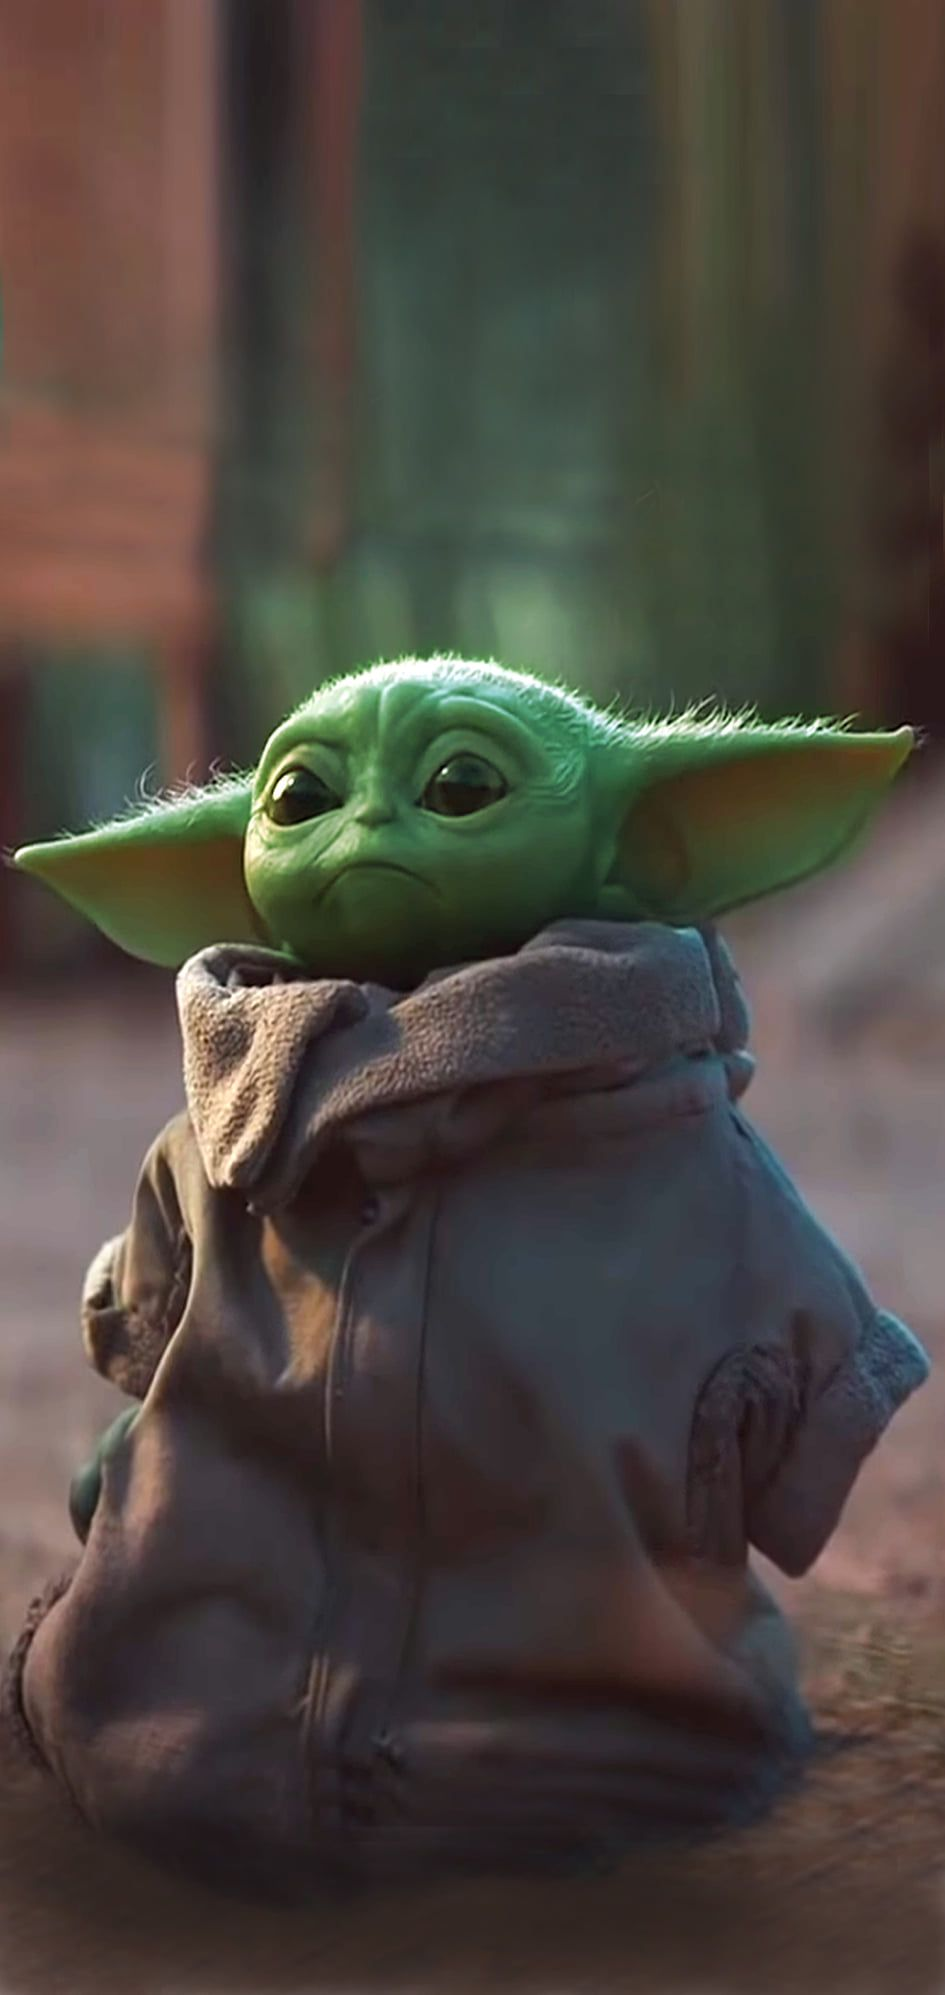 Download Baby Yoda Wallpaper By Alexandriamadison 13 Free On Zedge Now Browse Millions Of Popular Babyyoda Wallp Yoda Wallpaper Yoda Images Yoda Pictures